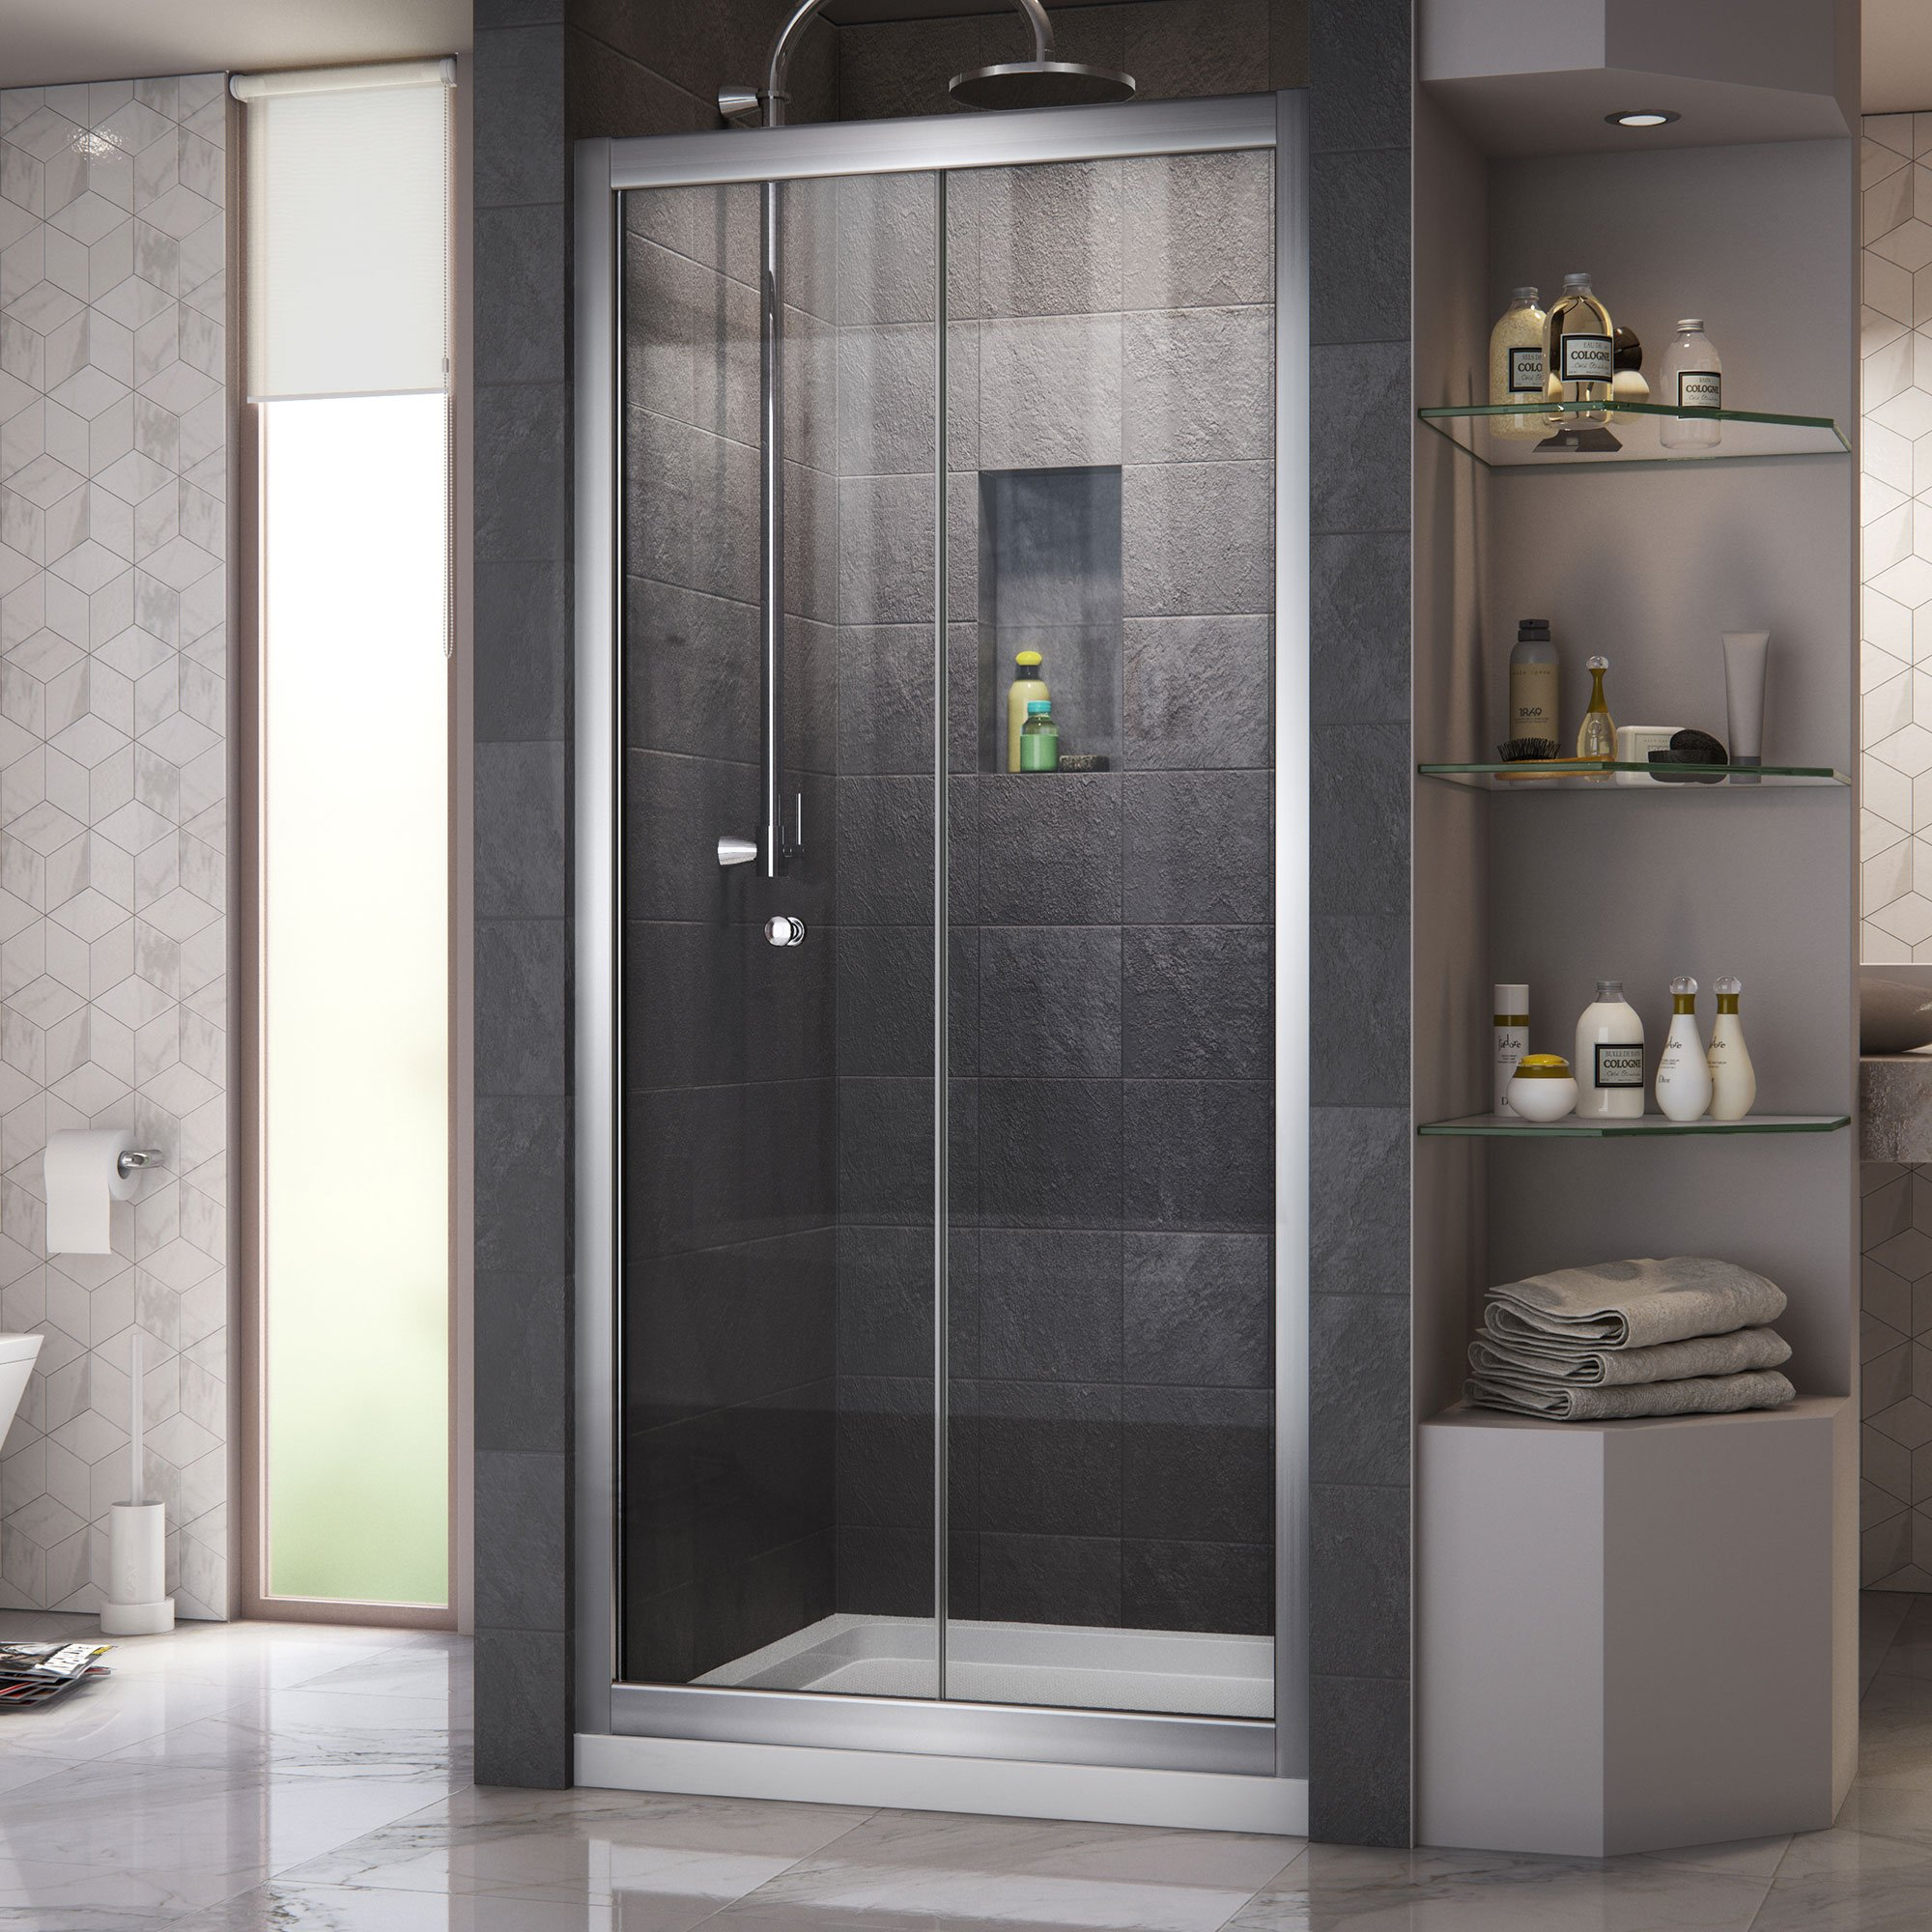 DreamLine Butterfly 34-35 1/2 in. Width, Frameless Bi-Fold Shower Door, 1/4'' Glass, Chrome Finish by DreamLine (Image #6)